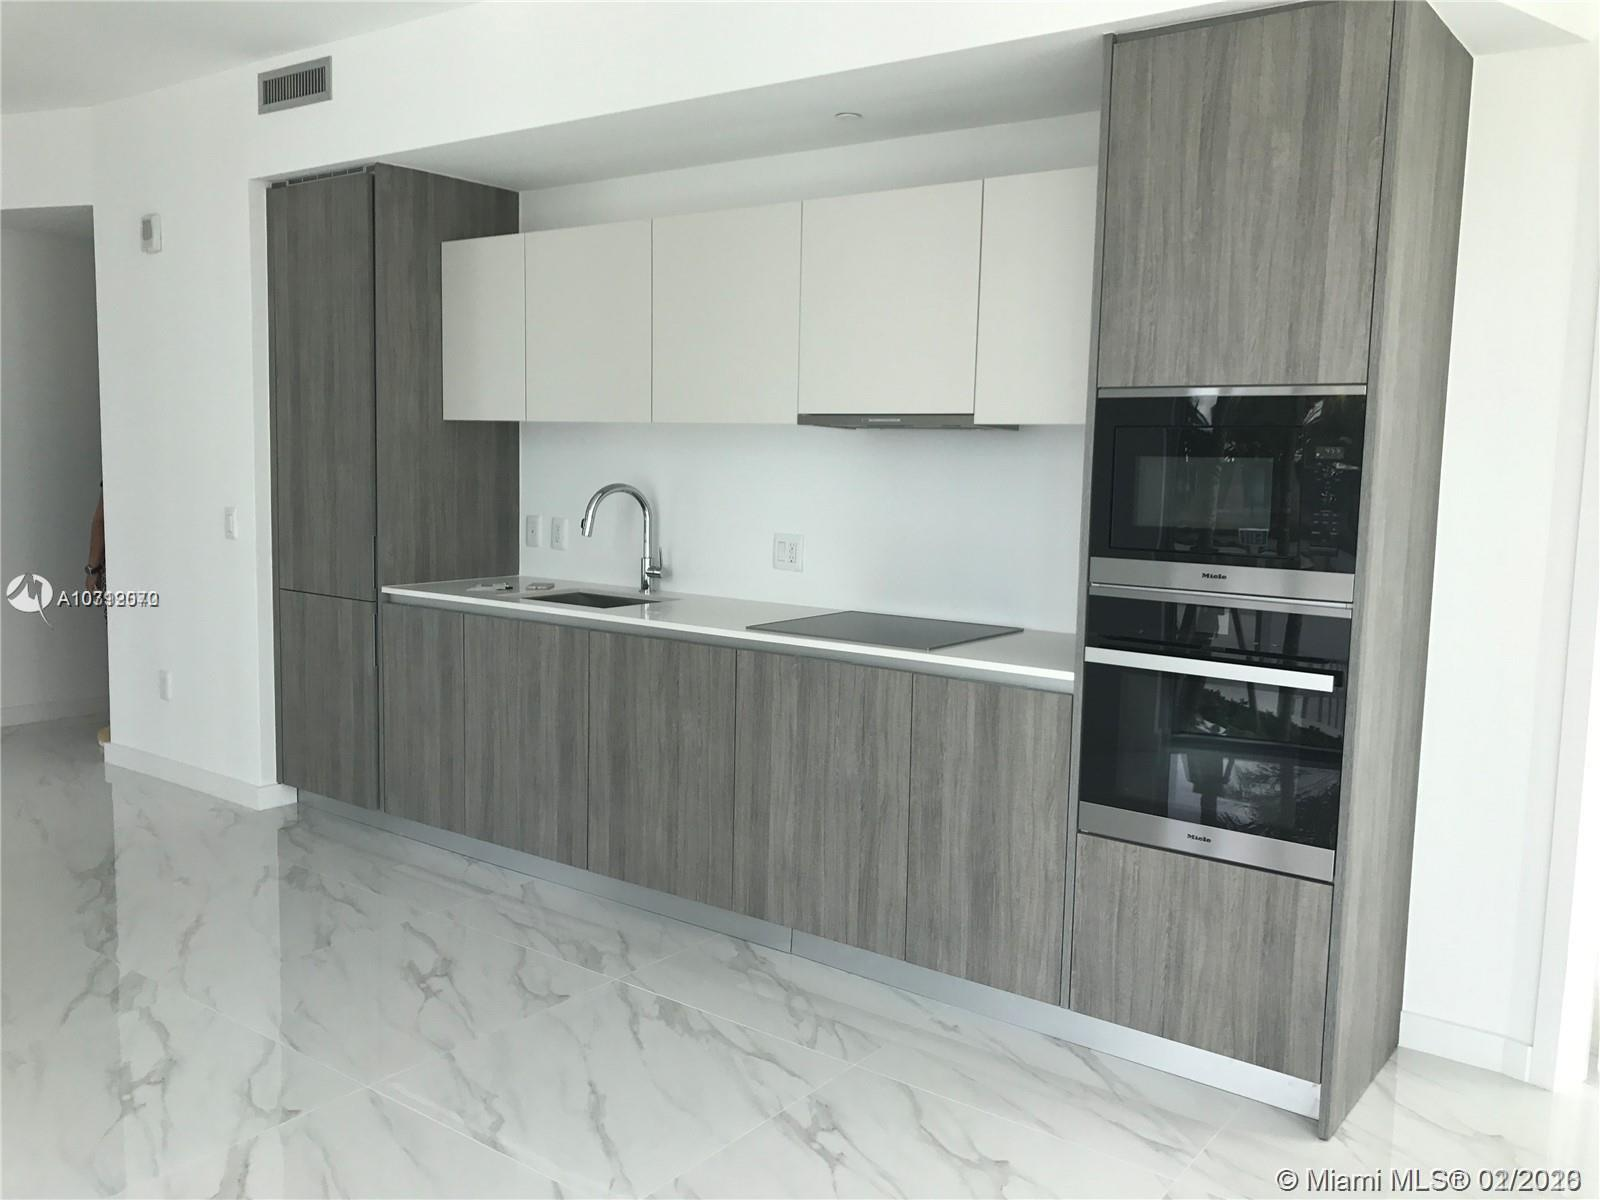 Be the first one to live in this magnificent 1 bedroom convertible 1.5 bath apartment in Beautiful B